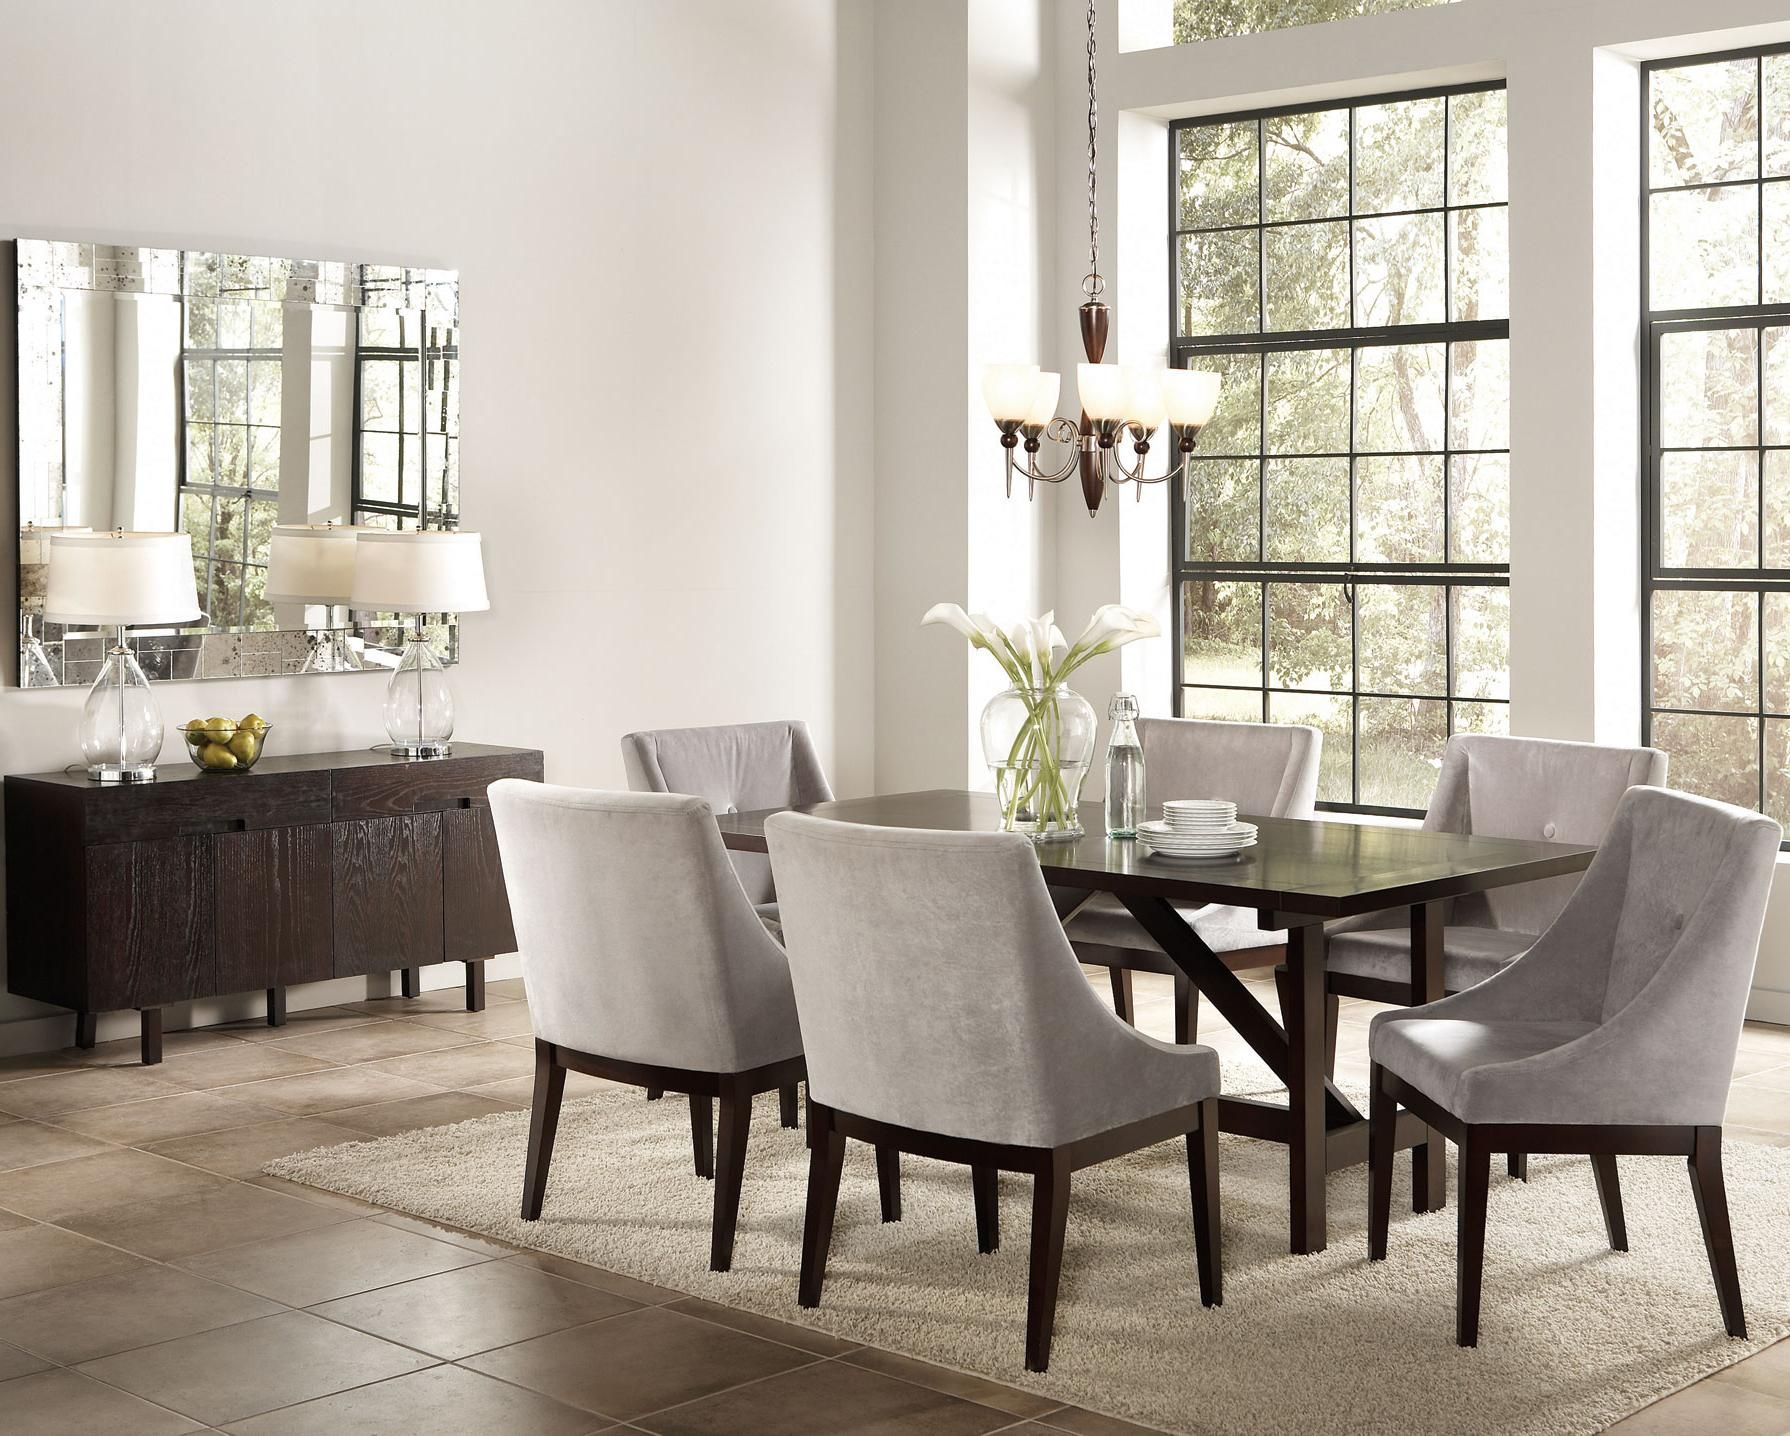 Candice 102230 By Coaster Wilcox Furniture Grey Dining